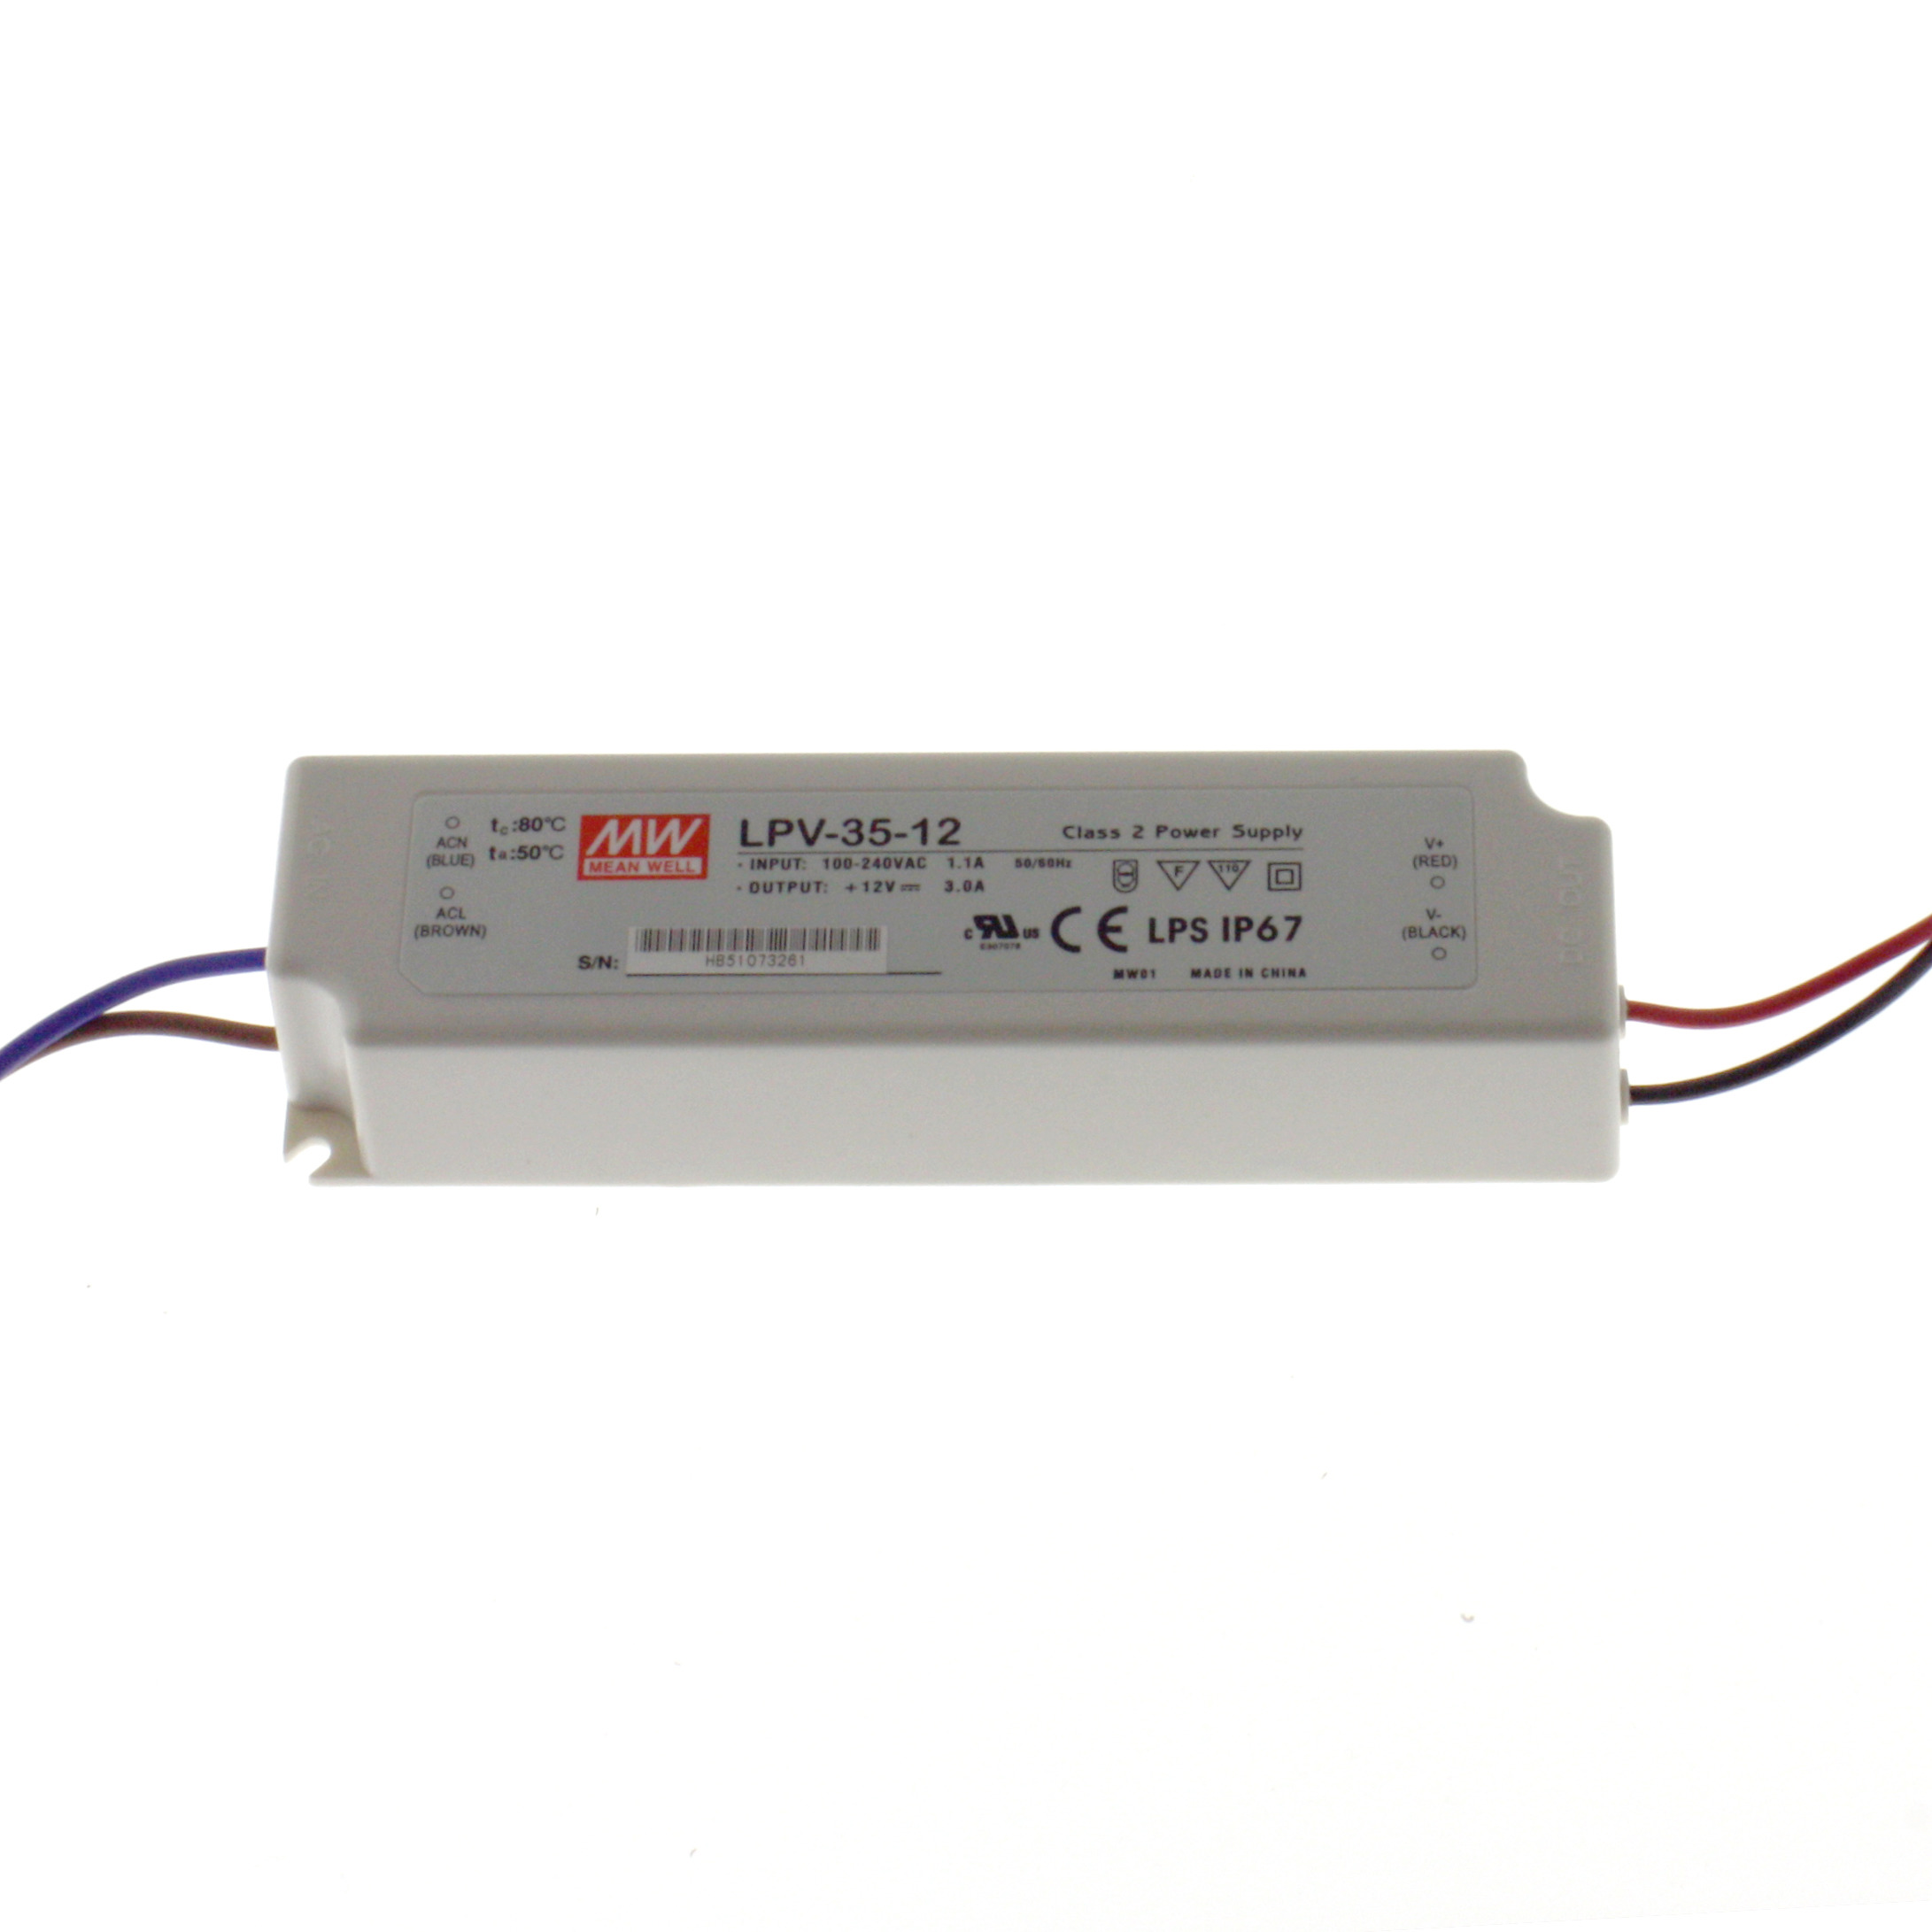 LED Power Supply LPV-35-12 3A 12V